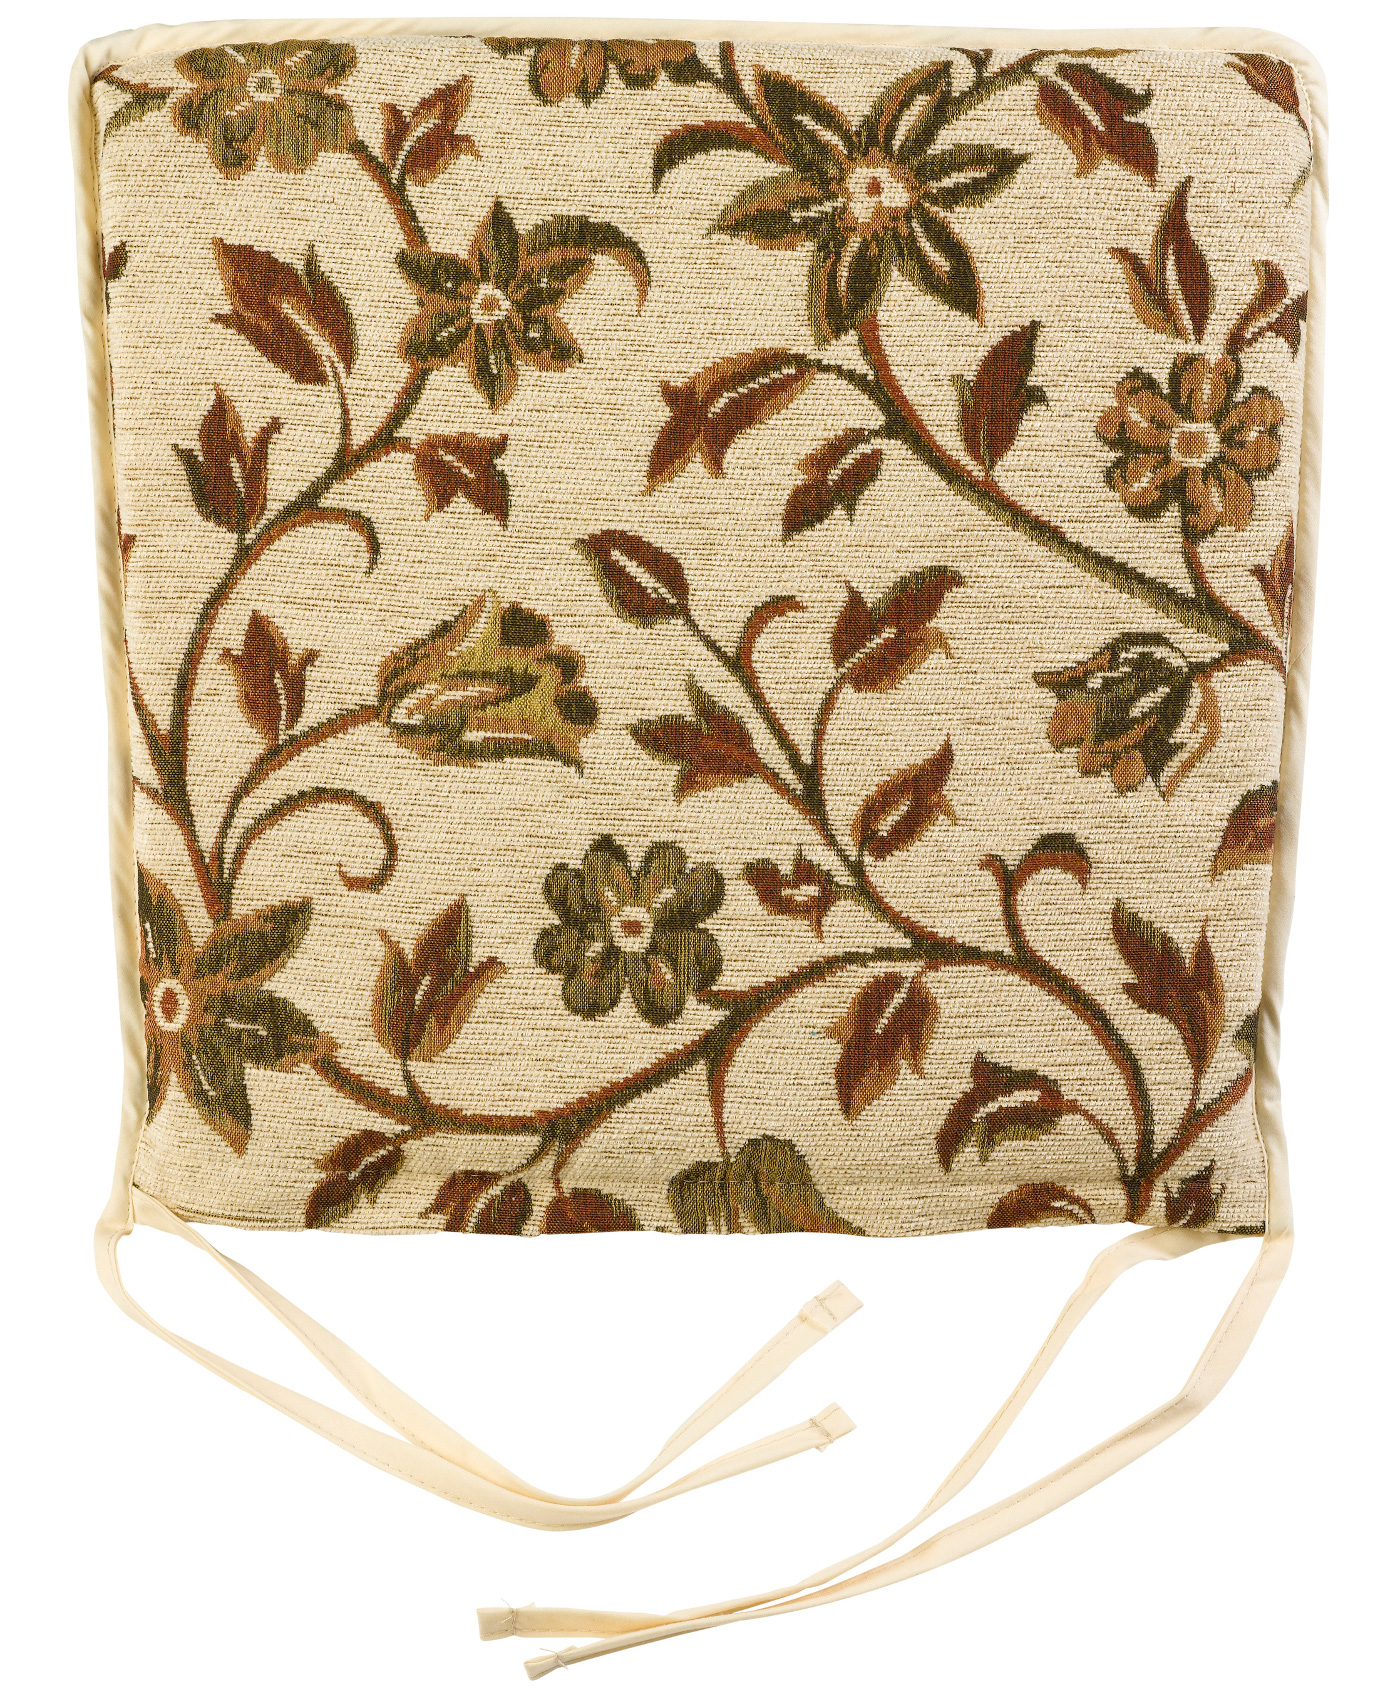 These Square Shaped Seat Pads Have A Pretty Floral Tapestry Style Pattern Throughout And They Would Be Ideal For Garden Kitchen Or Dining Room Chairs